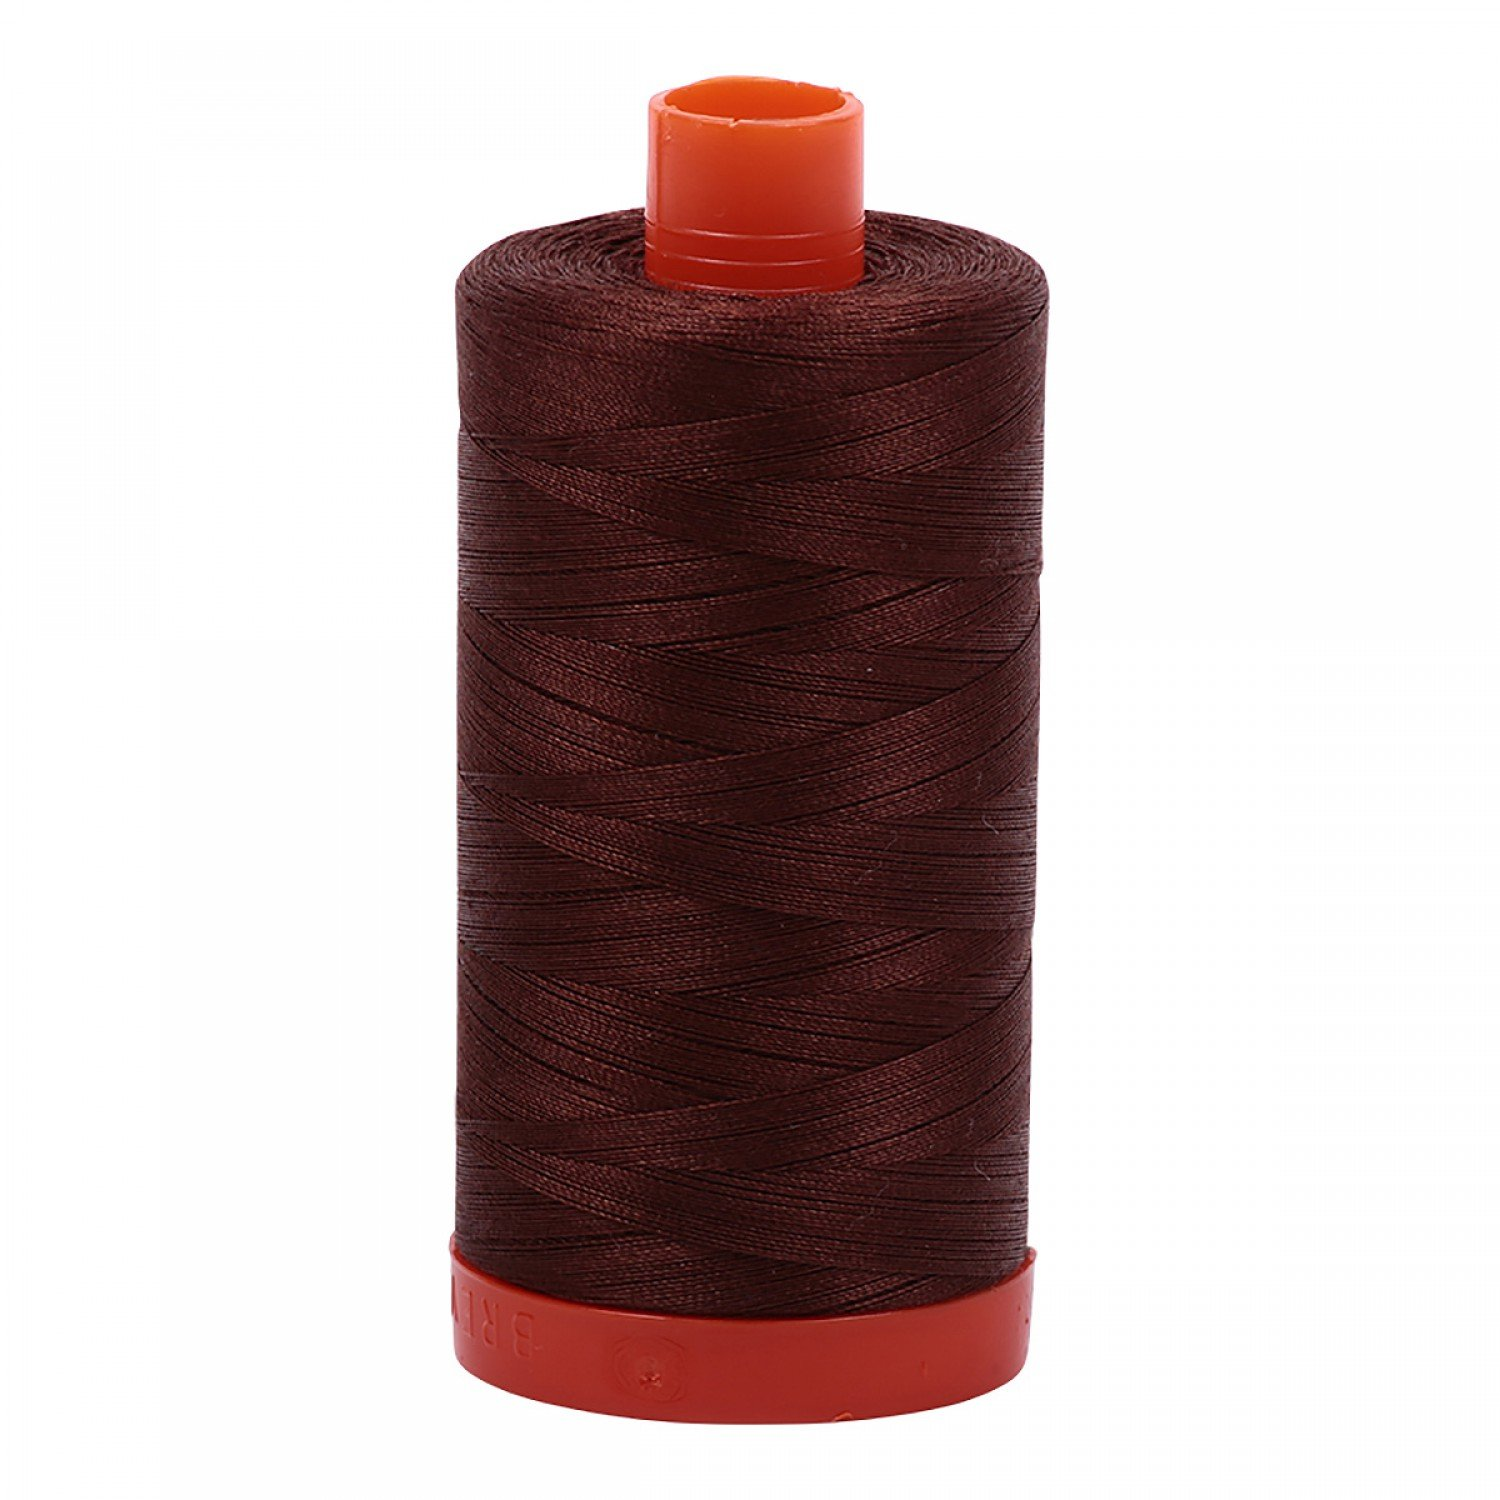 Aurifil Cotton Mako Thread 50wt 1300m 2360 Chocolate